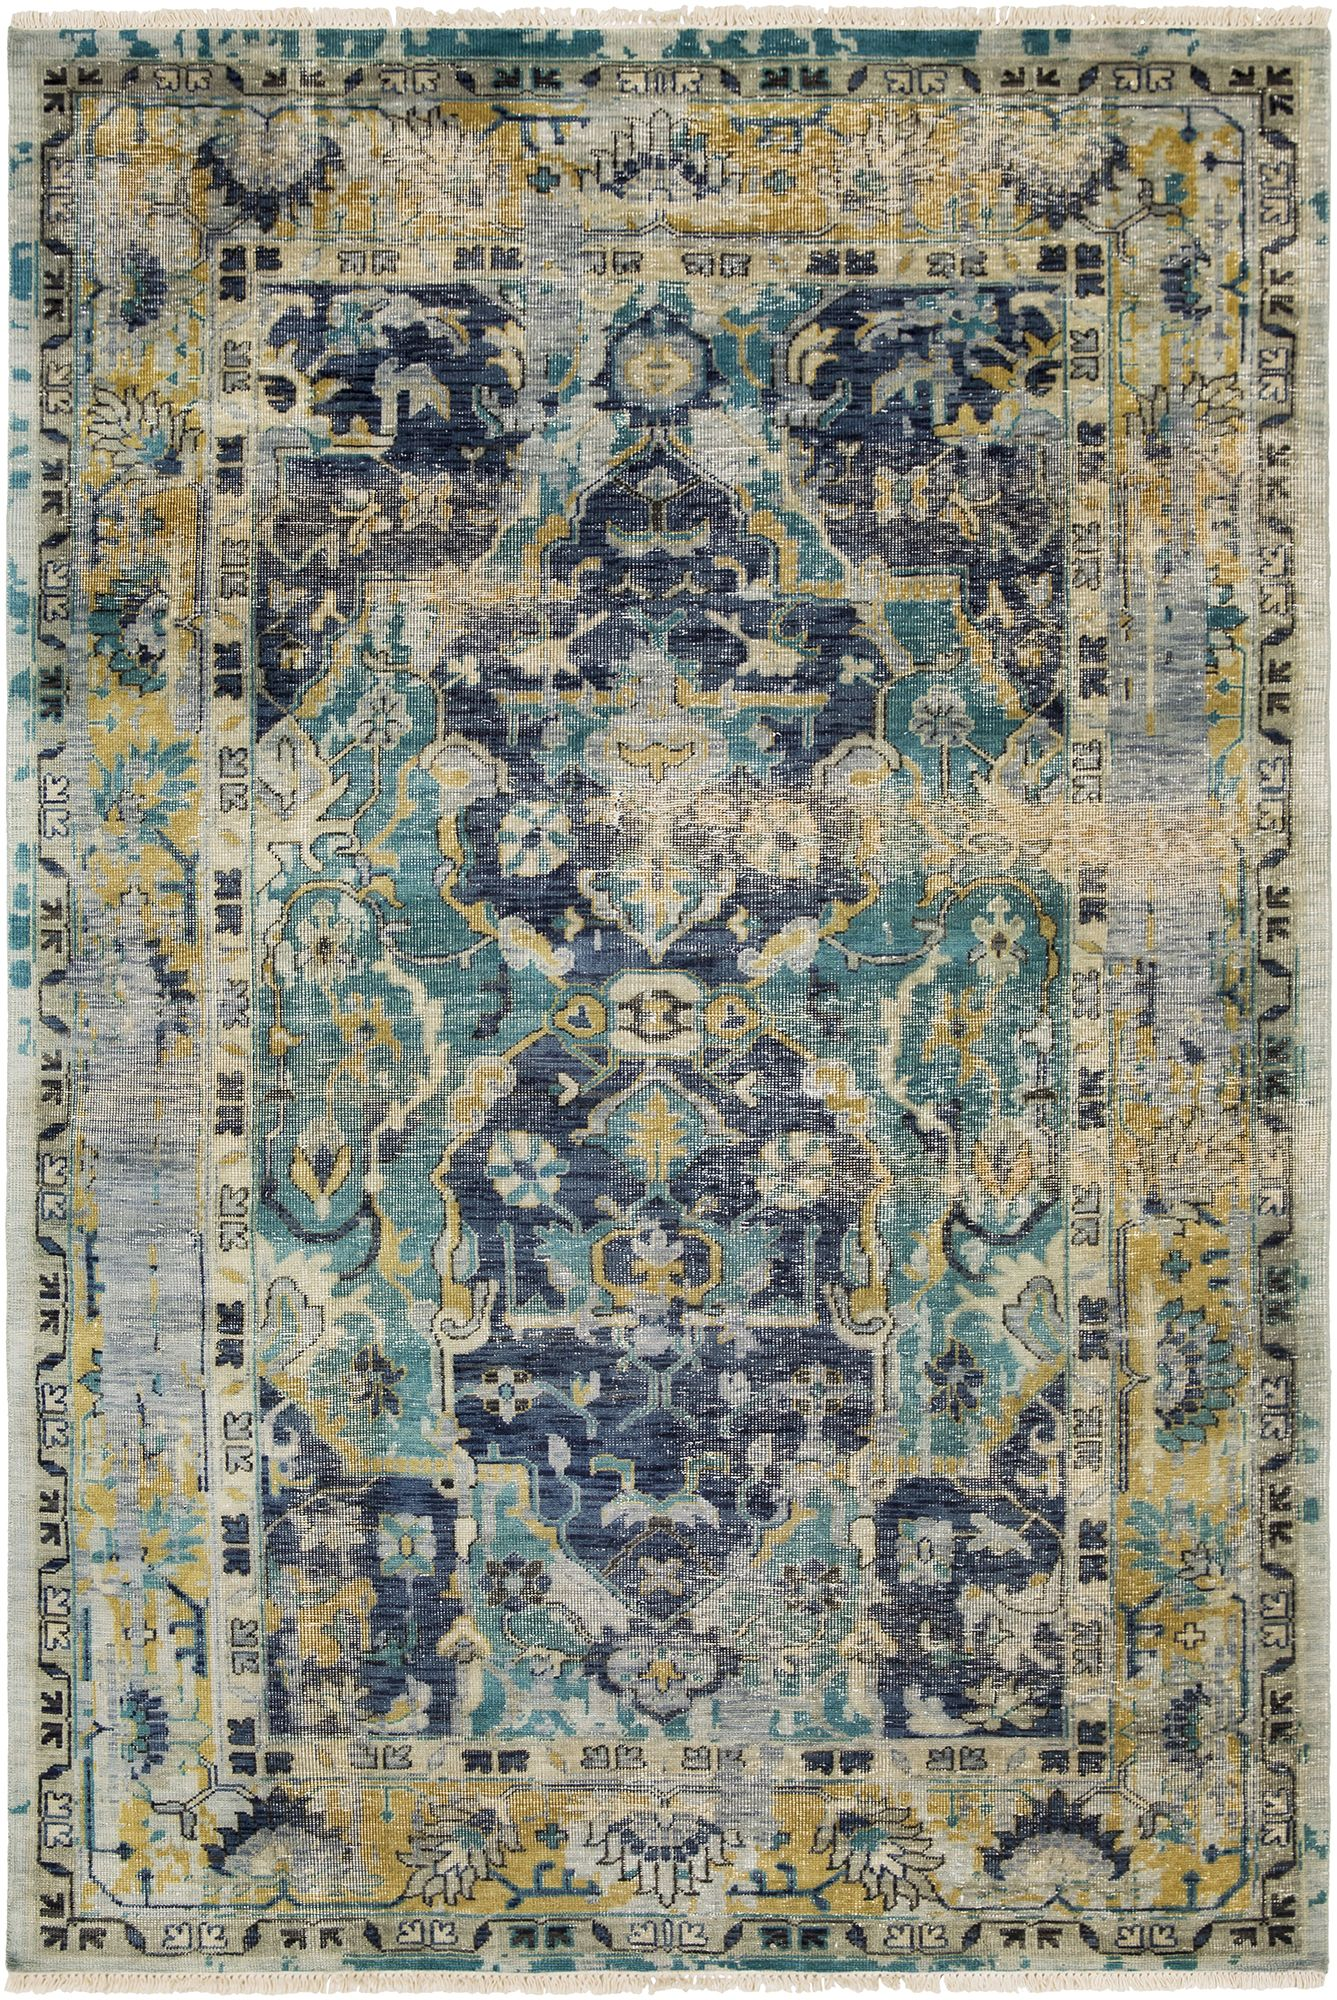 living room wall decor ideas in india modern rugs festival hand-knotted wool area #rug from @suryasocial ...